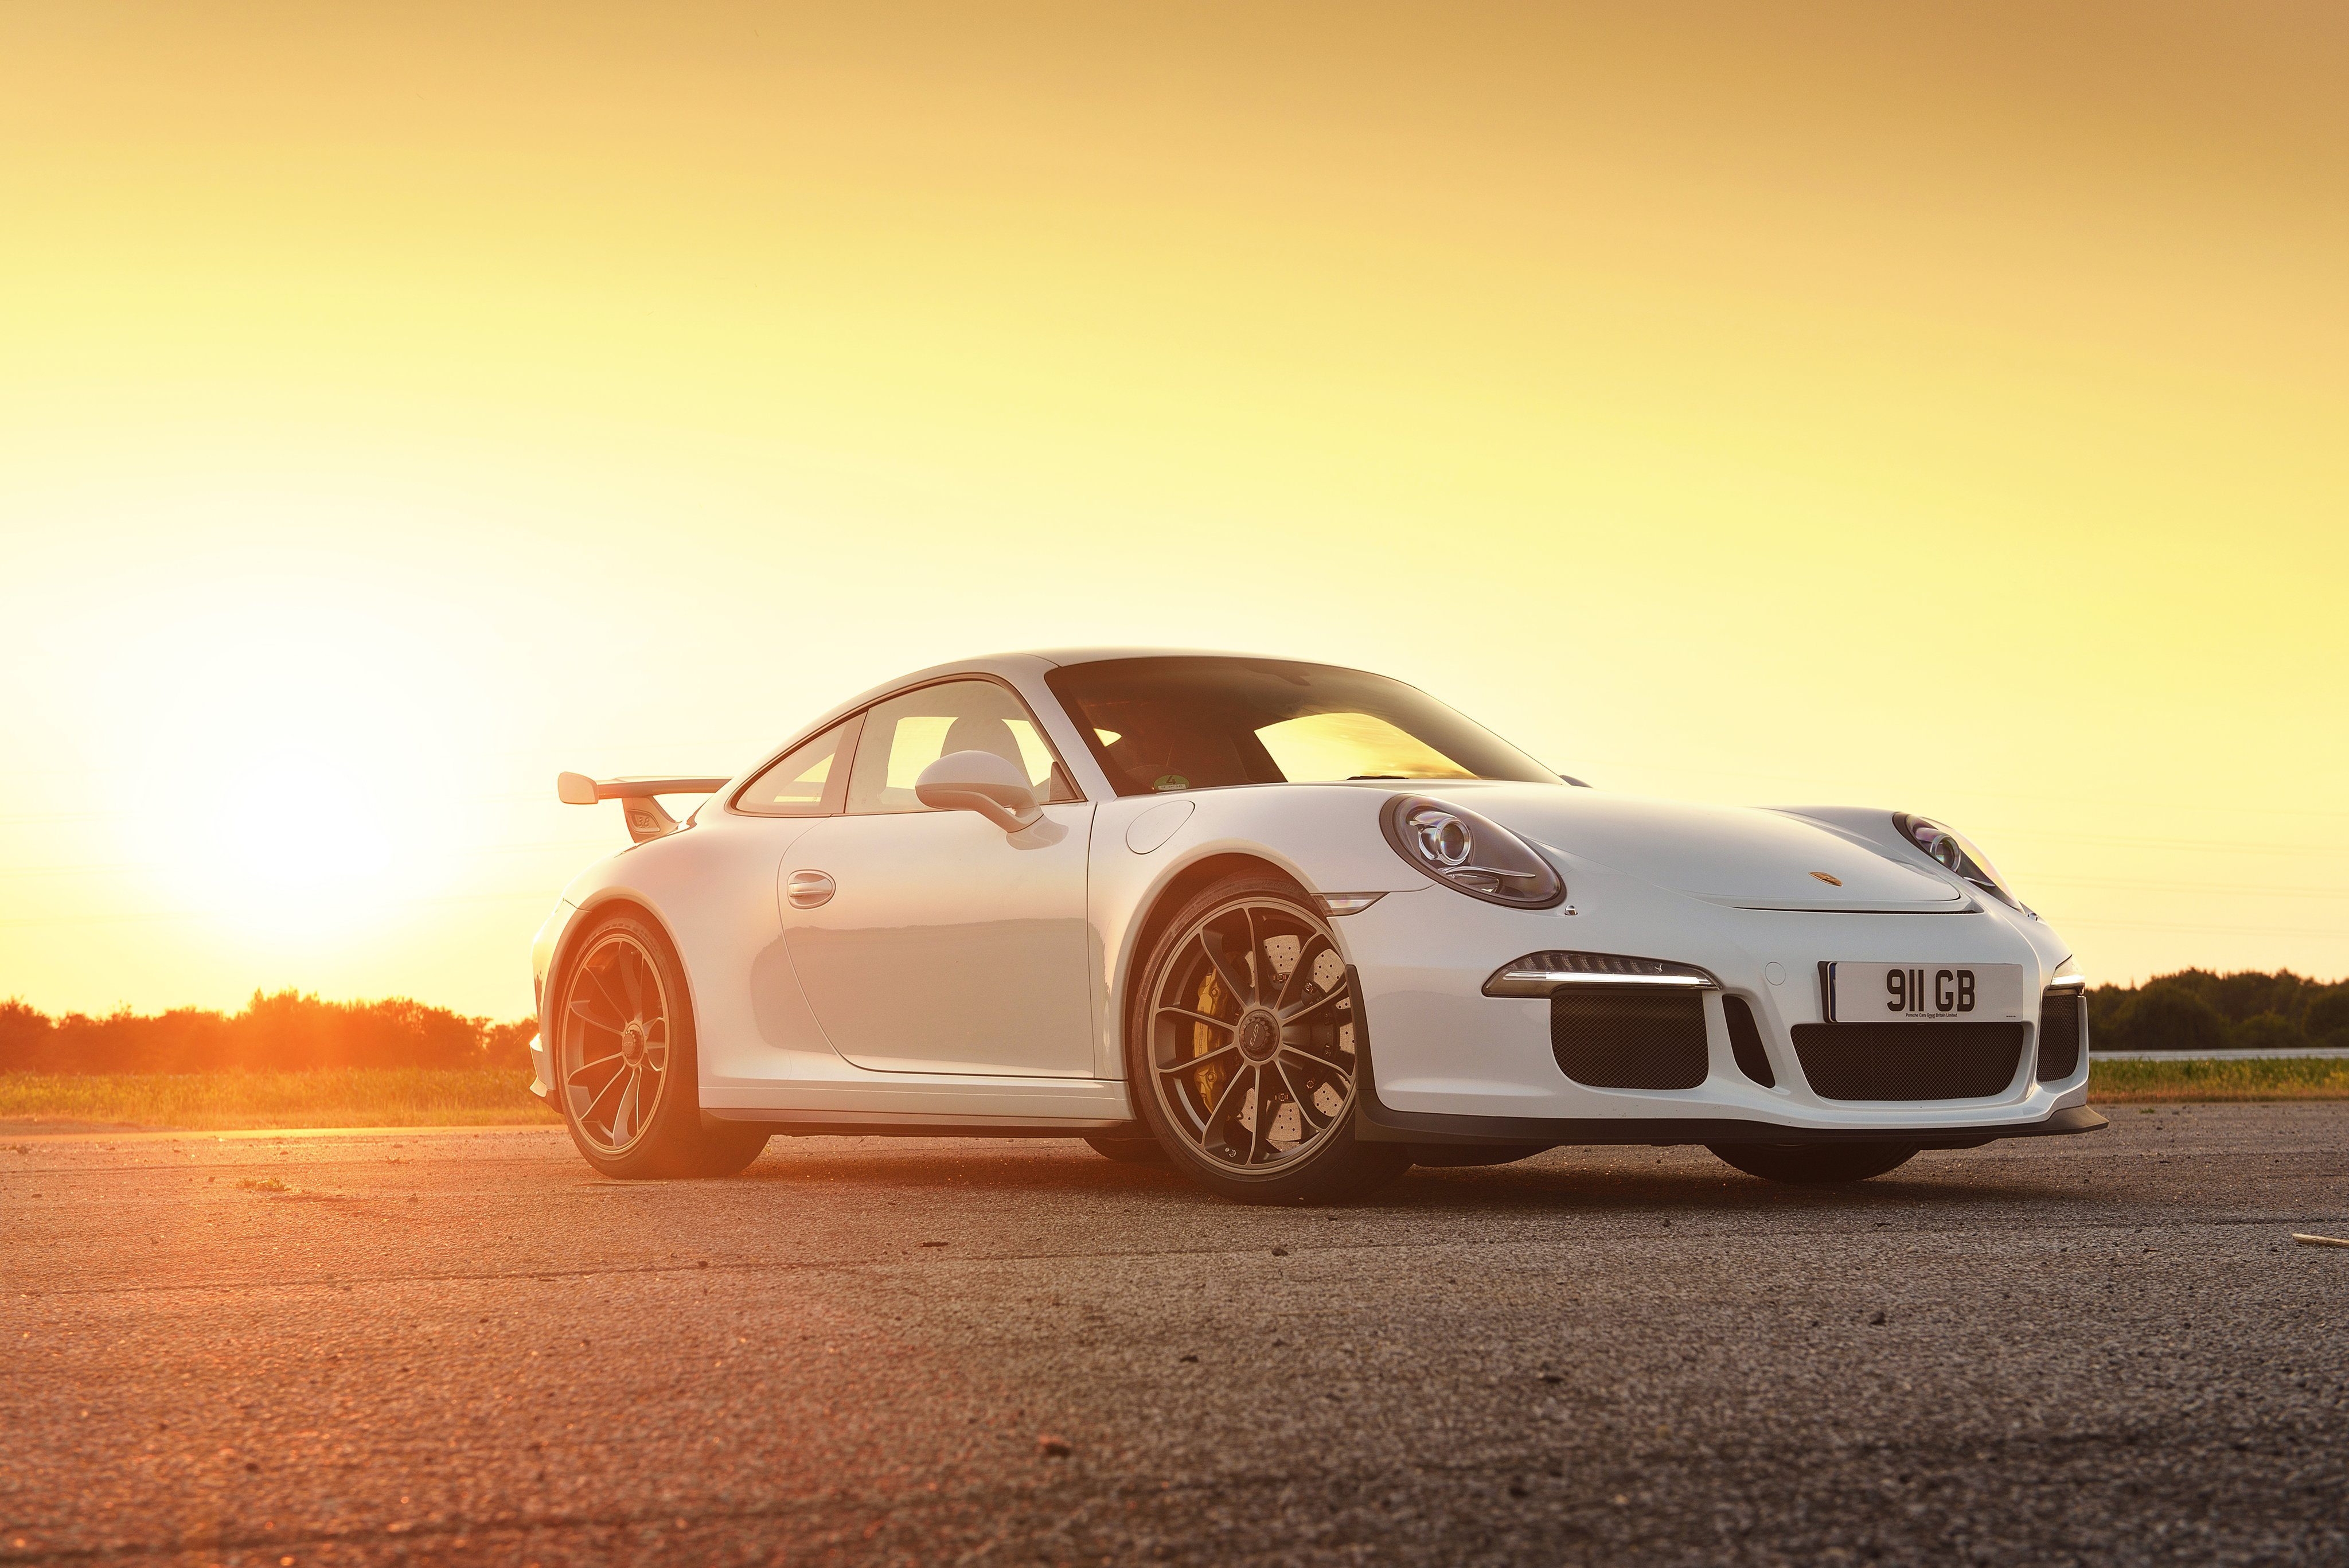 2014 Porsche 911 GT3 UK spec 991 wallpaper 4096x2734 4096x2734